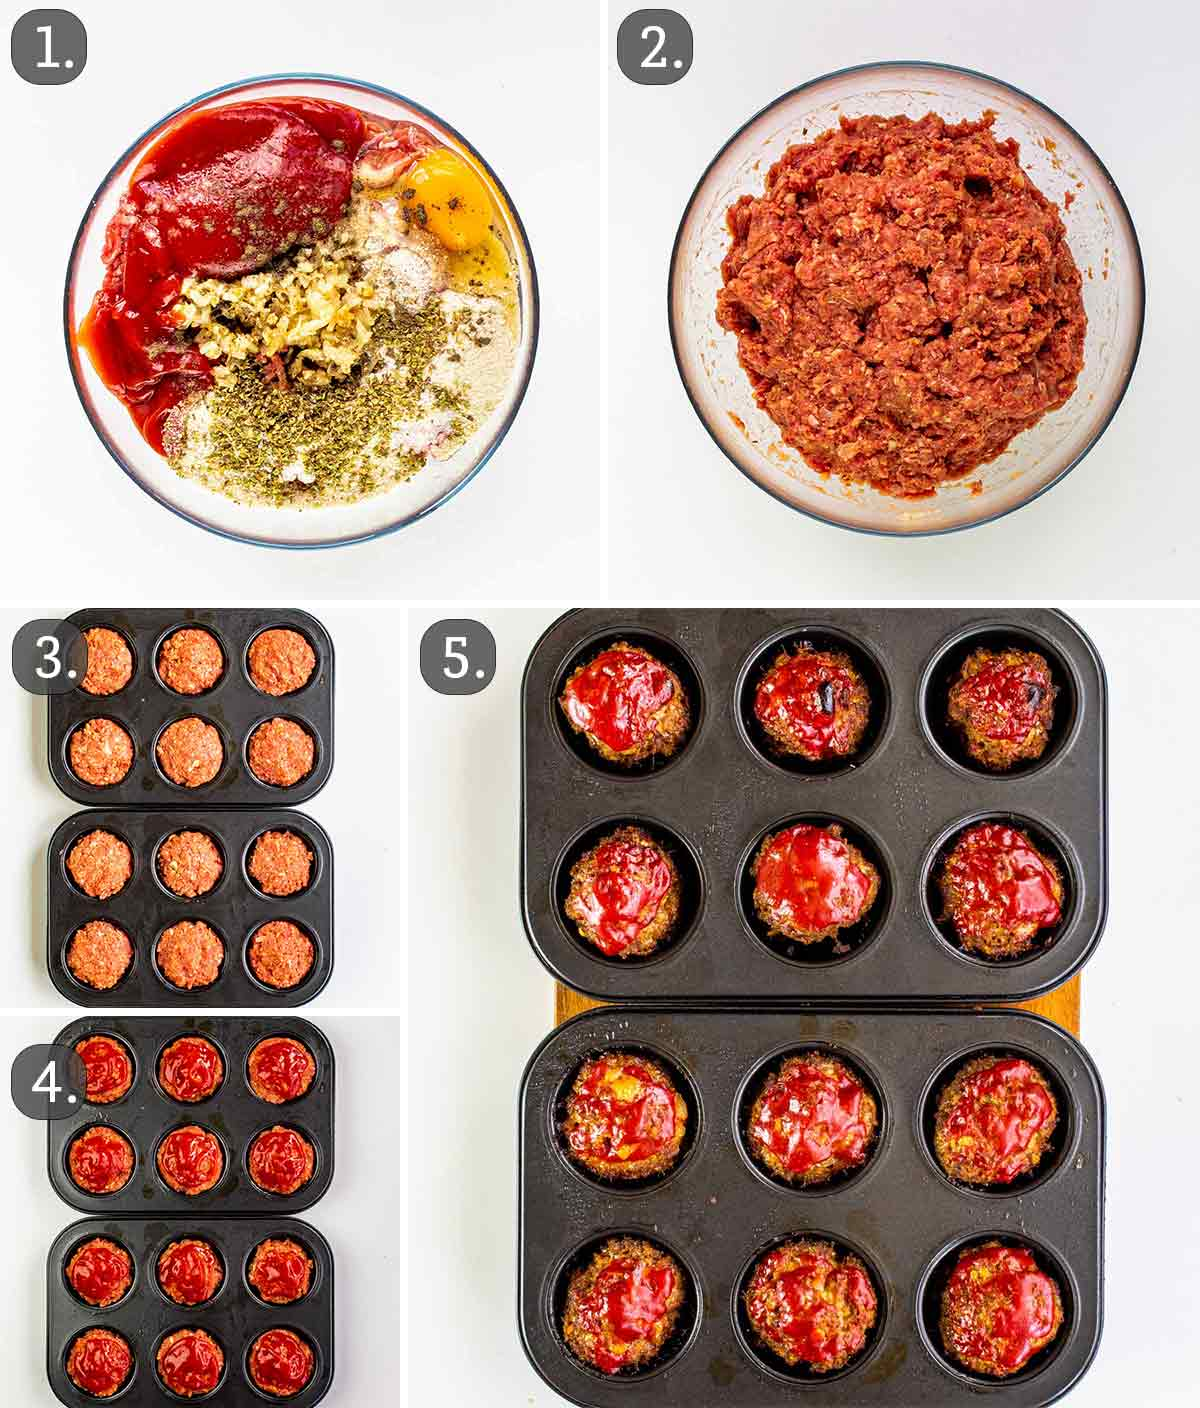 detailed process shots showing how to make meatloaf muffins.